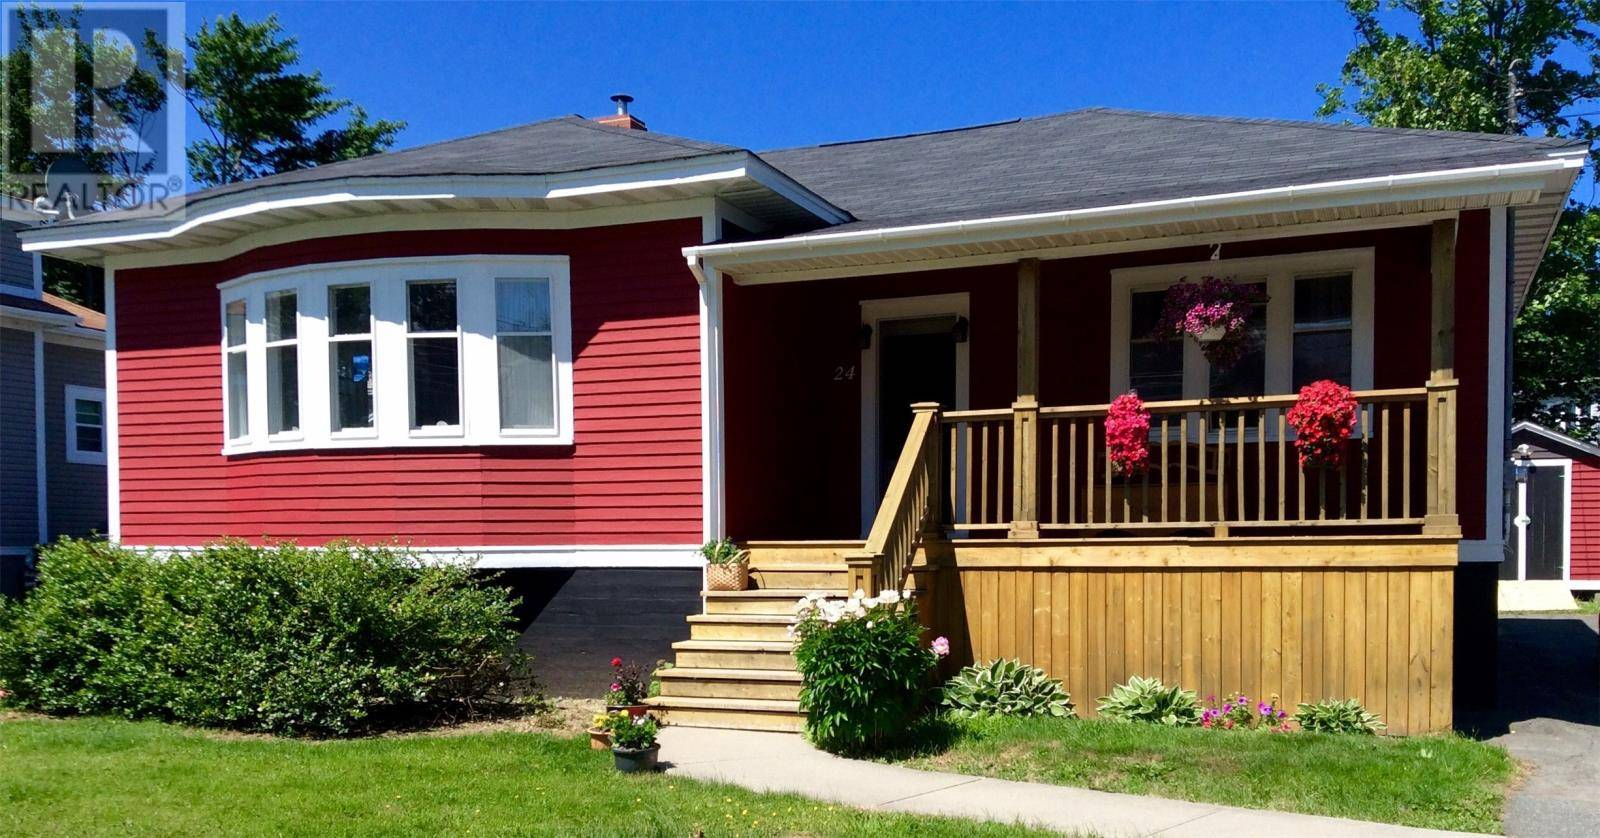 House for sale at 24 Cornwall Ave St. John's Newfoundland - MLS: 1199427